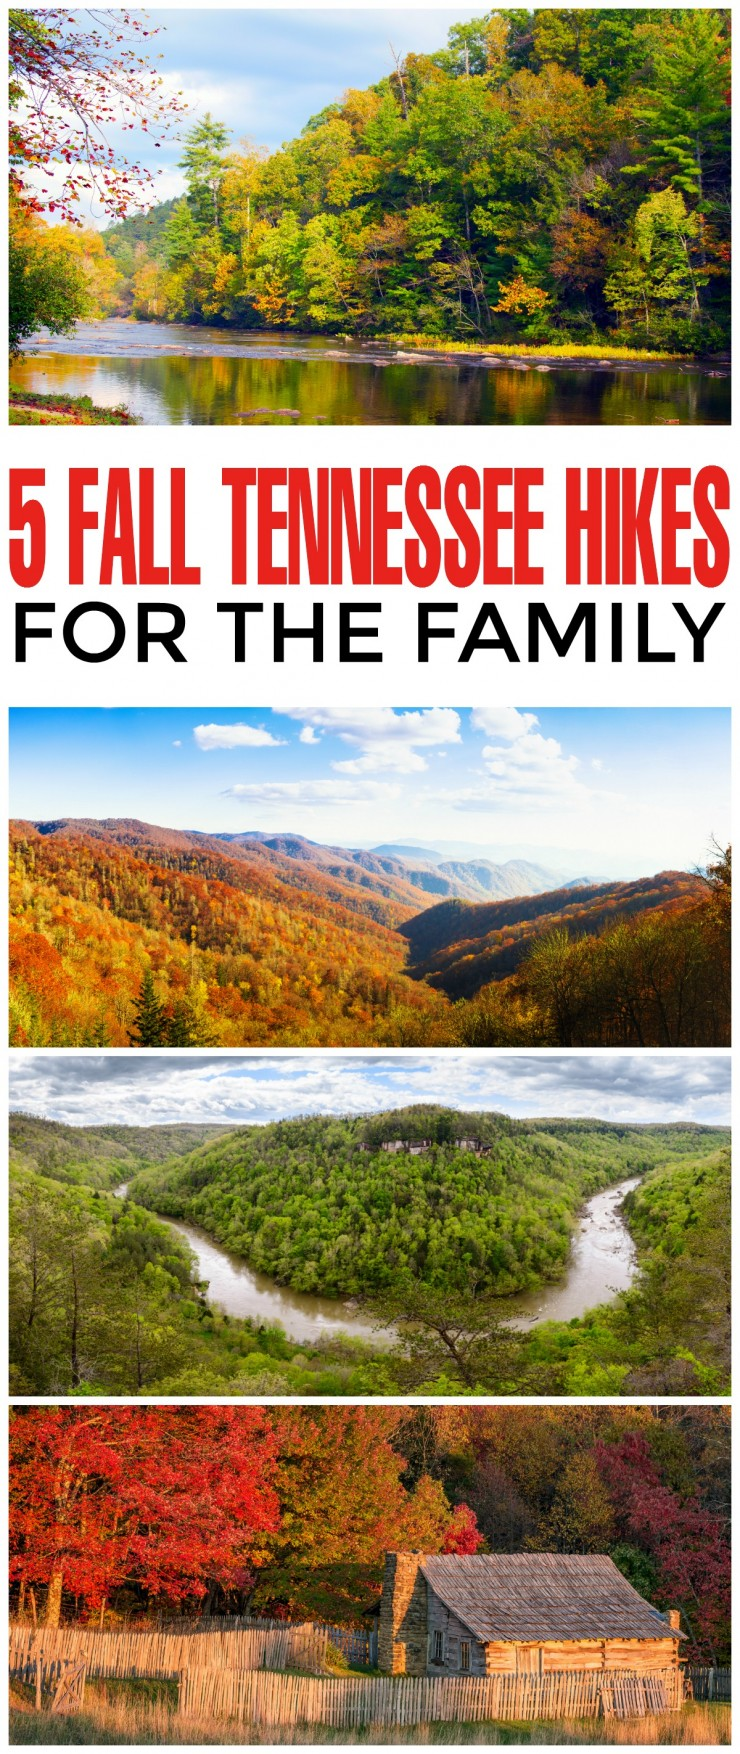 Hiking is one of the main activities in the state of Tennessee, with national parks and forests in every corner and area of the state. Here are 5 Fall Tennessee Hikes for the Family.